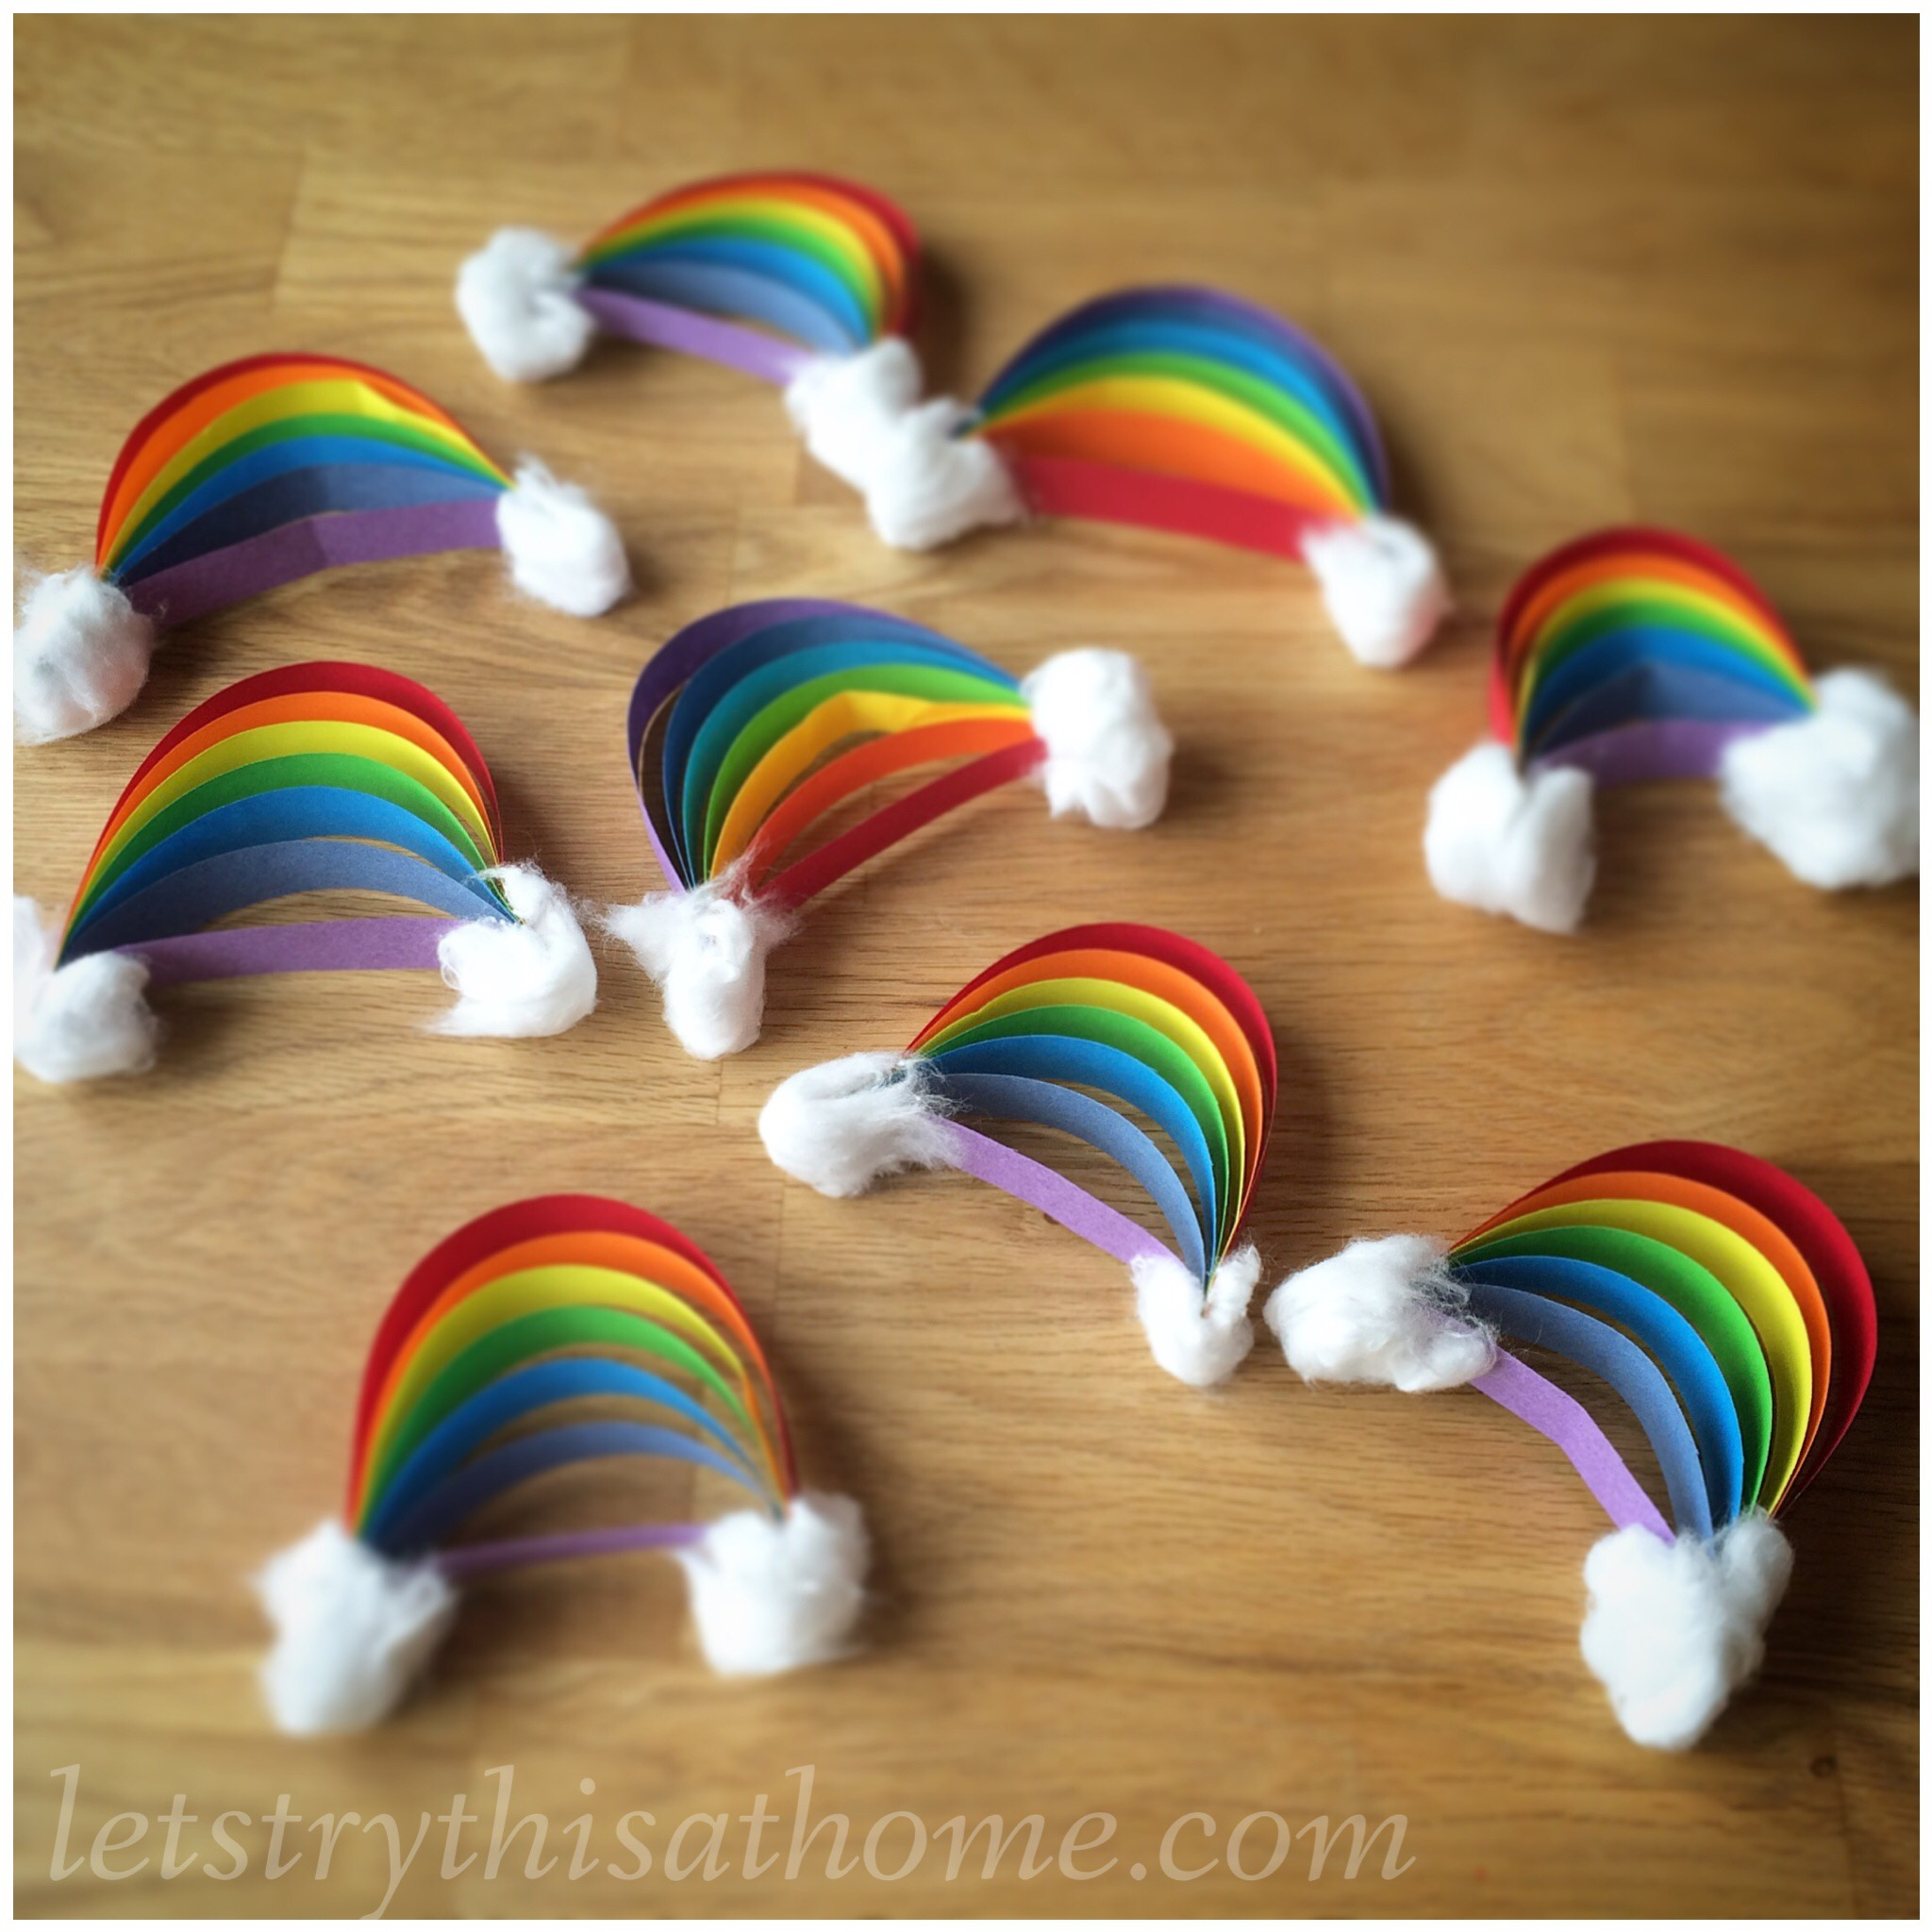 rainbow art and craft paper rainbow craft letstrythisathome 5308